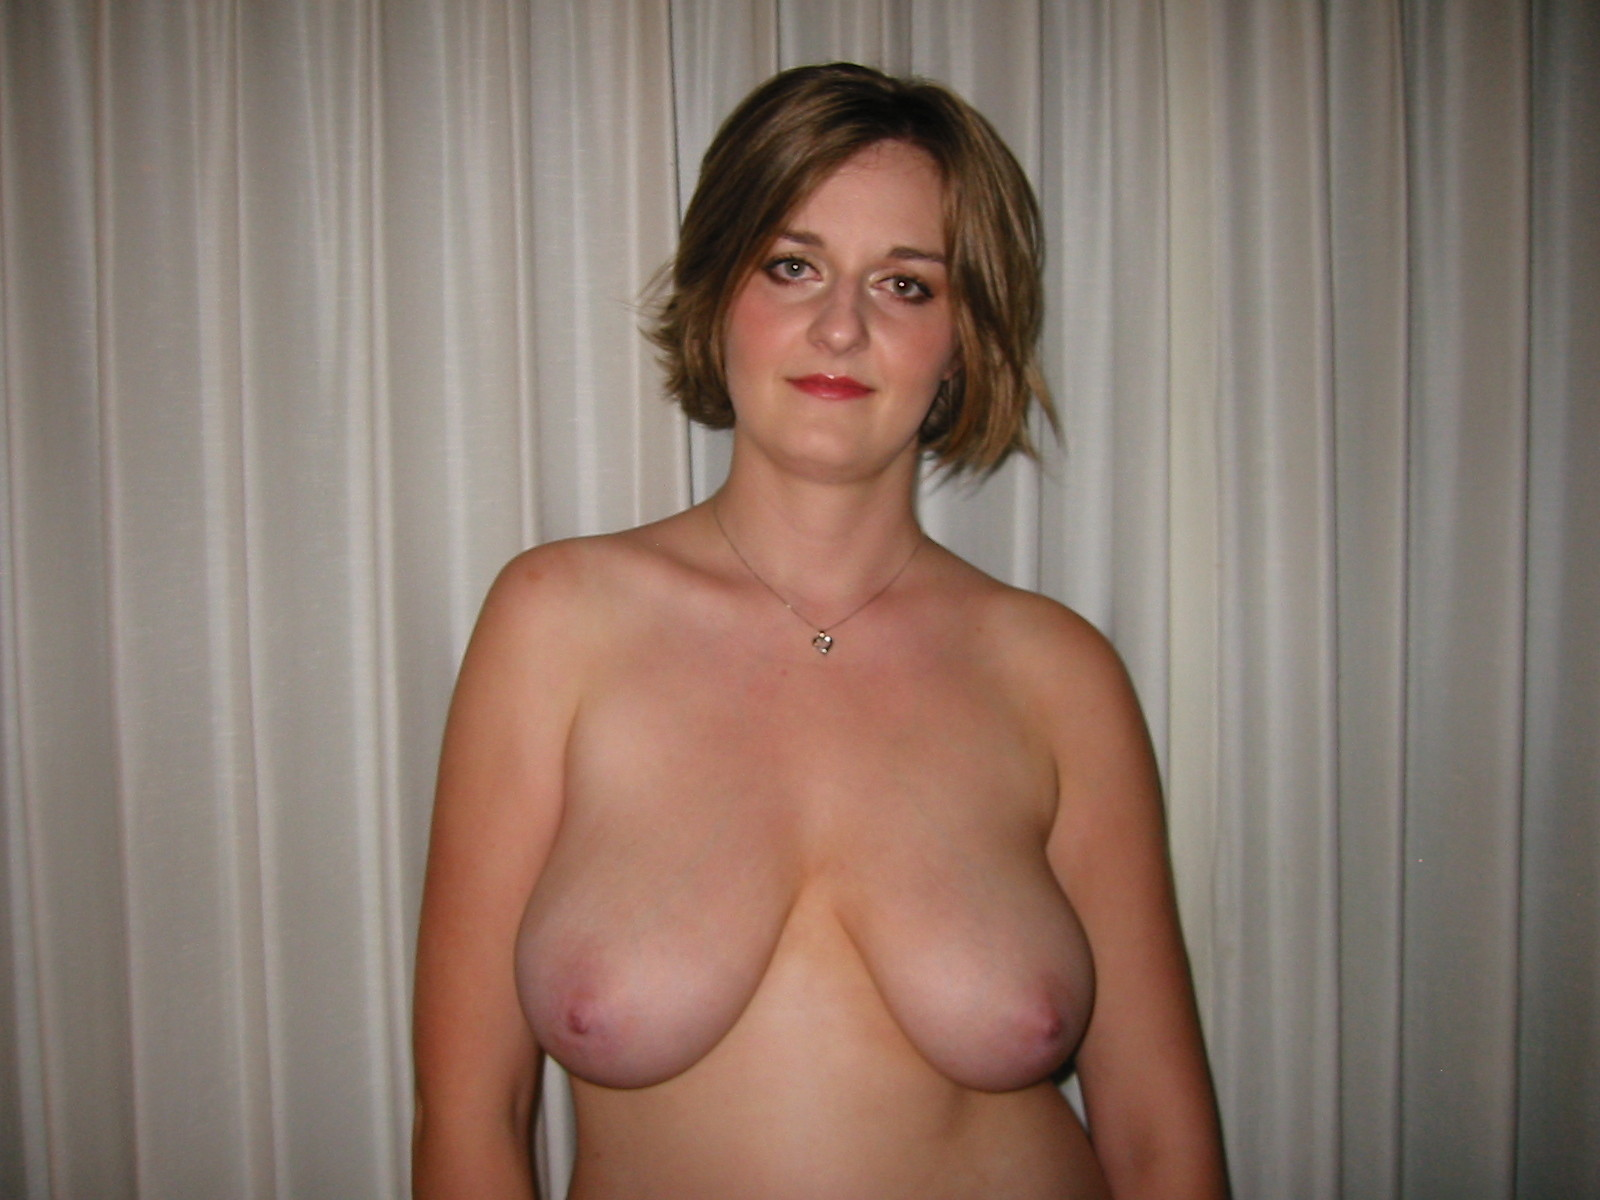 Amateur Milfs Showing Off Their Big Beautiful Mature Tits The Law Of